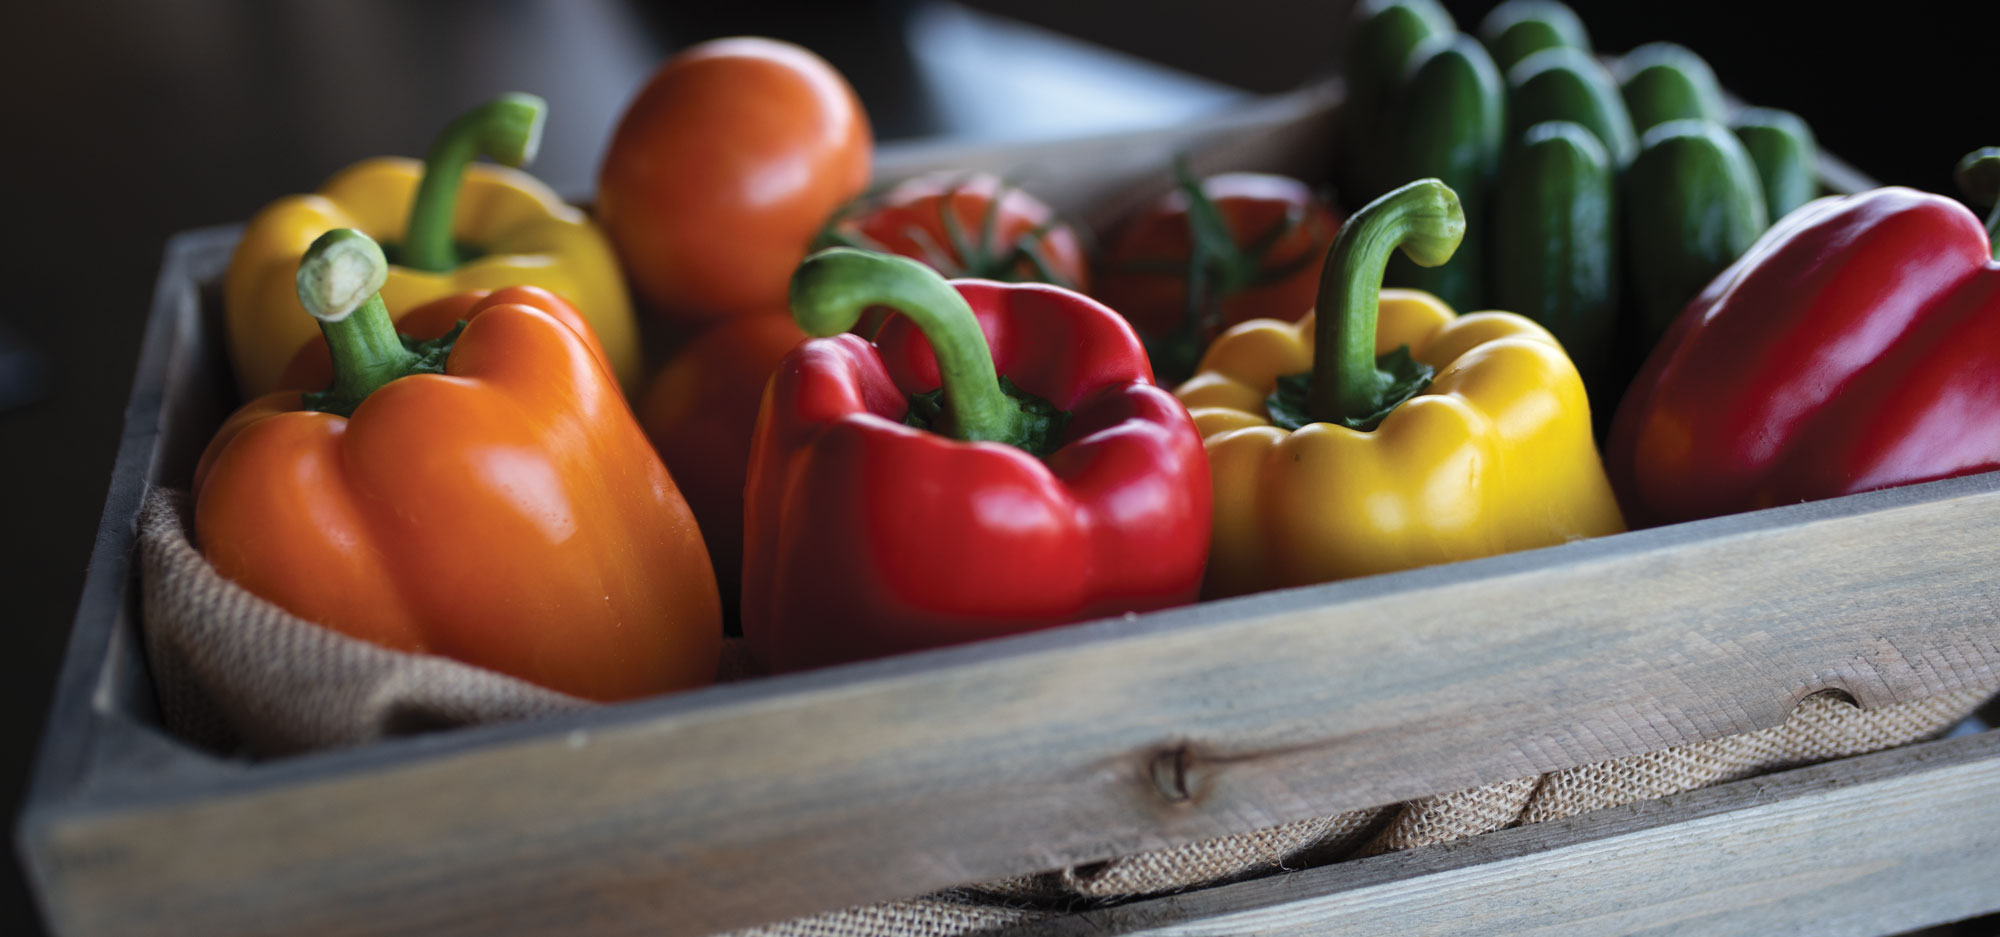 Red Sun Farms prides itself in providing greenhouse-grown organic bell peppers, as well as cucumbers and tomatoes